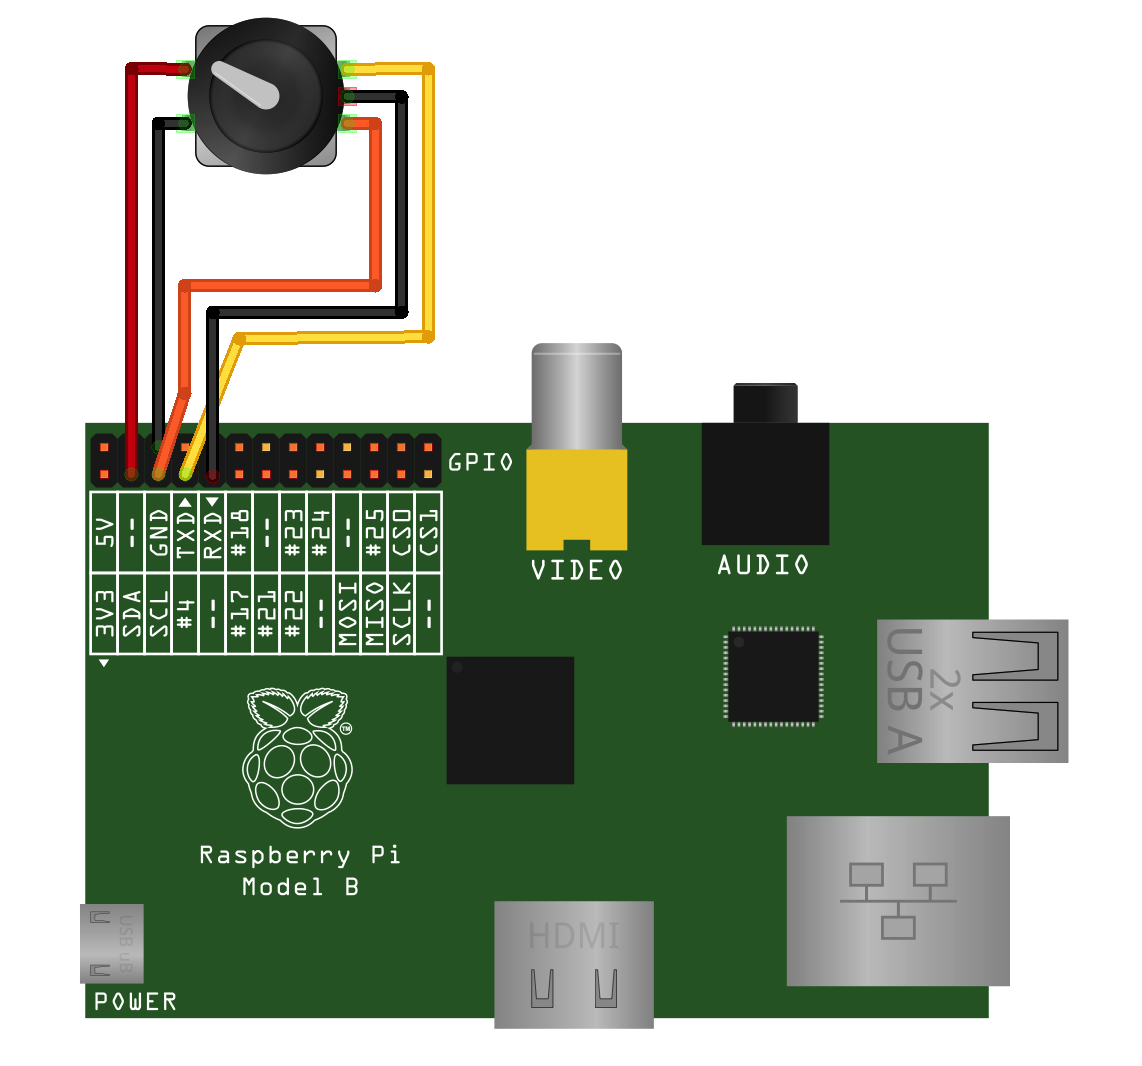 rotary encoder library for the raspberry pi